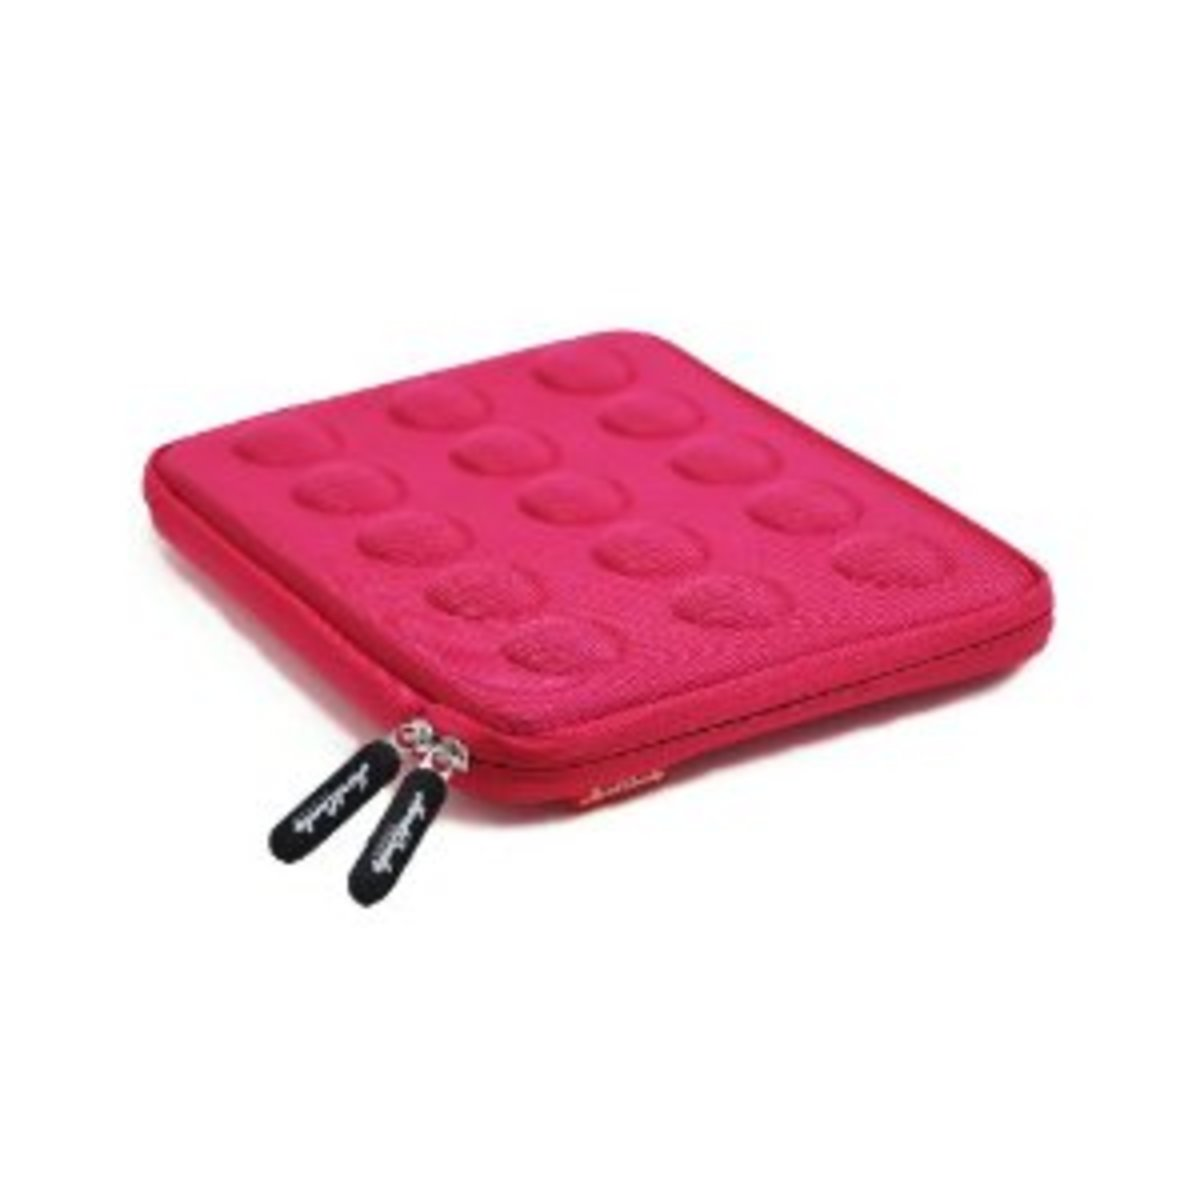 Hard Candy Pink iPad sleeve